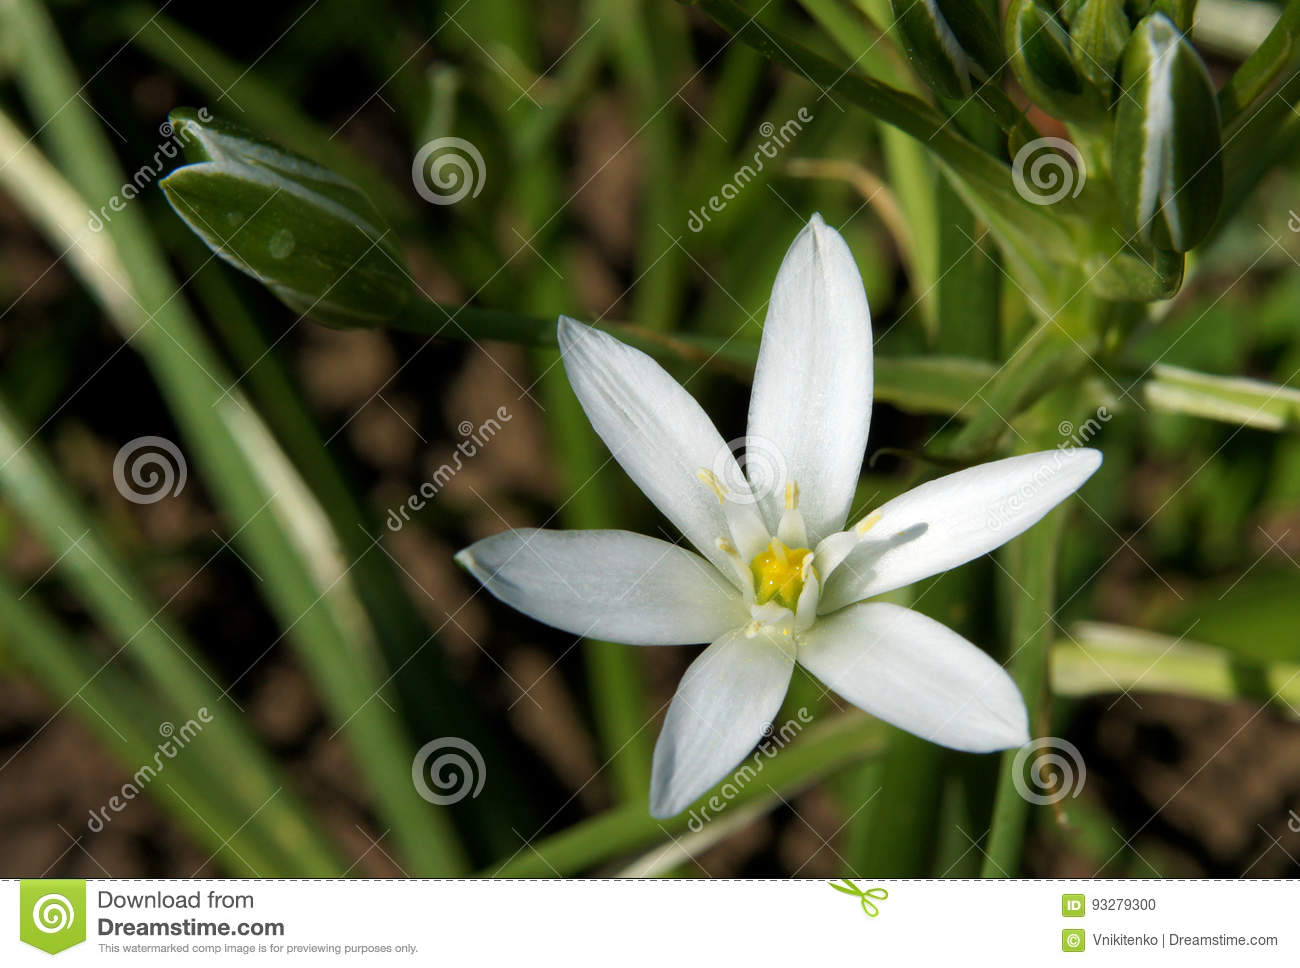 White star shaped flowers stock photo image of nature 93279300 download white star shaped flowers stock photo image of nature 93279300 mightylinksfo